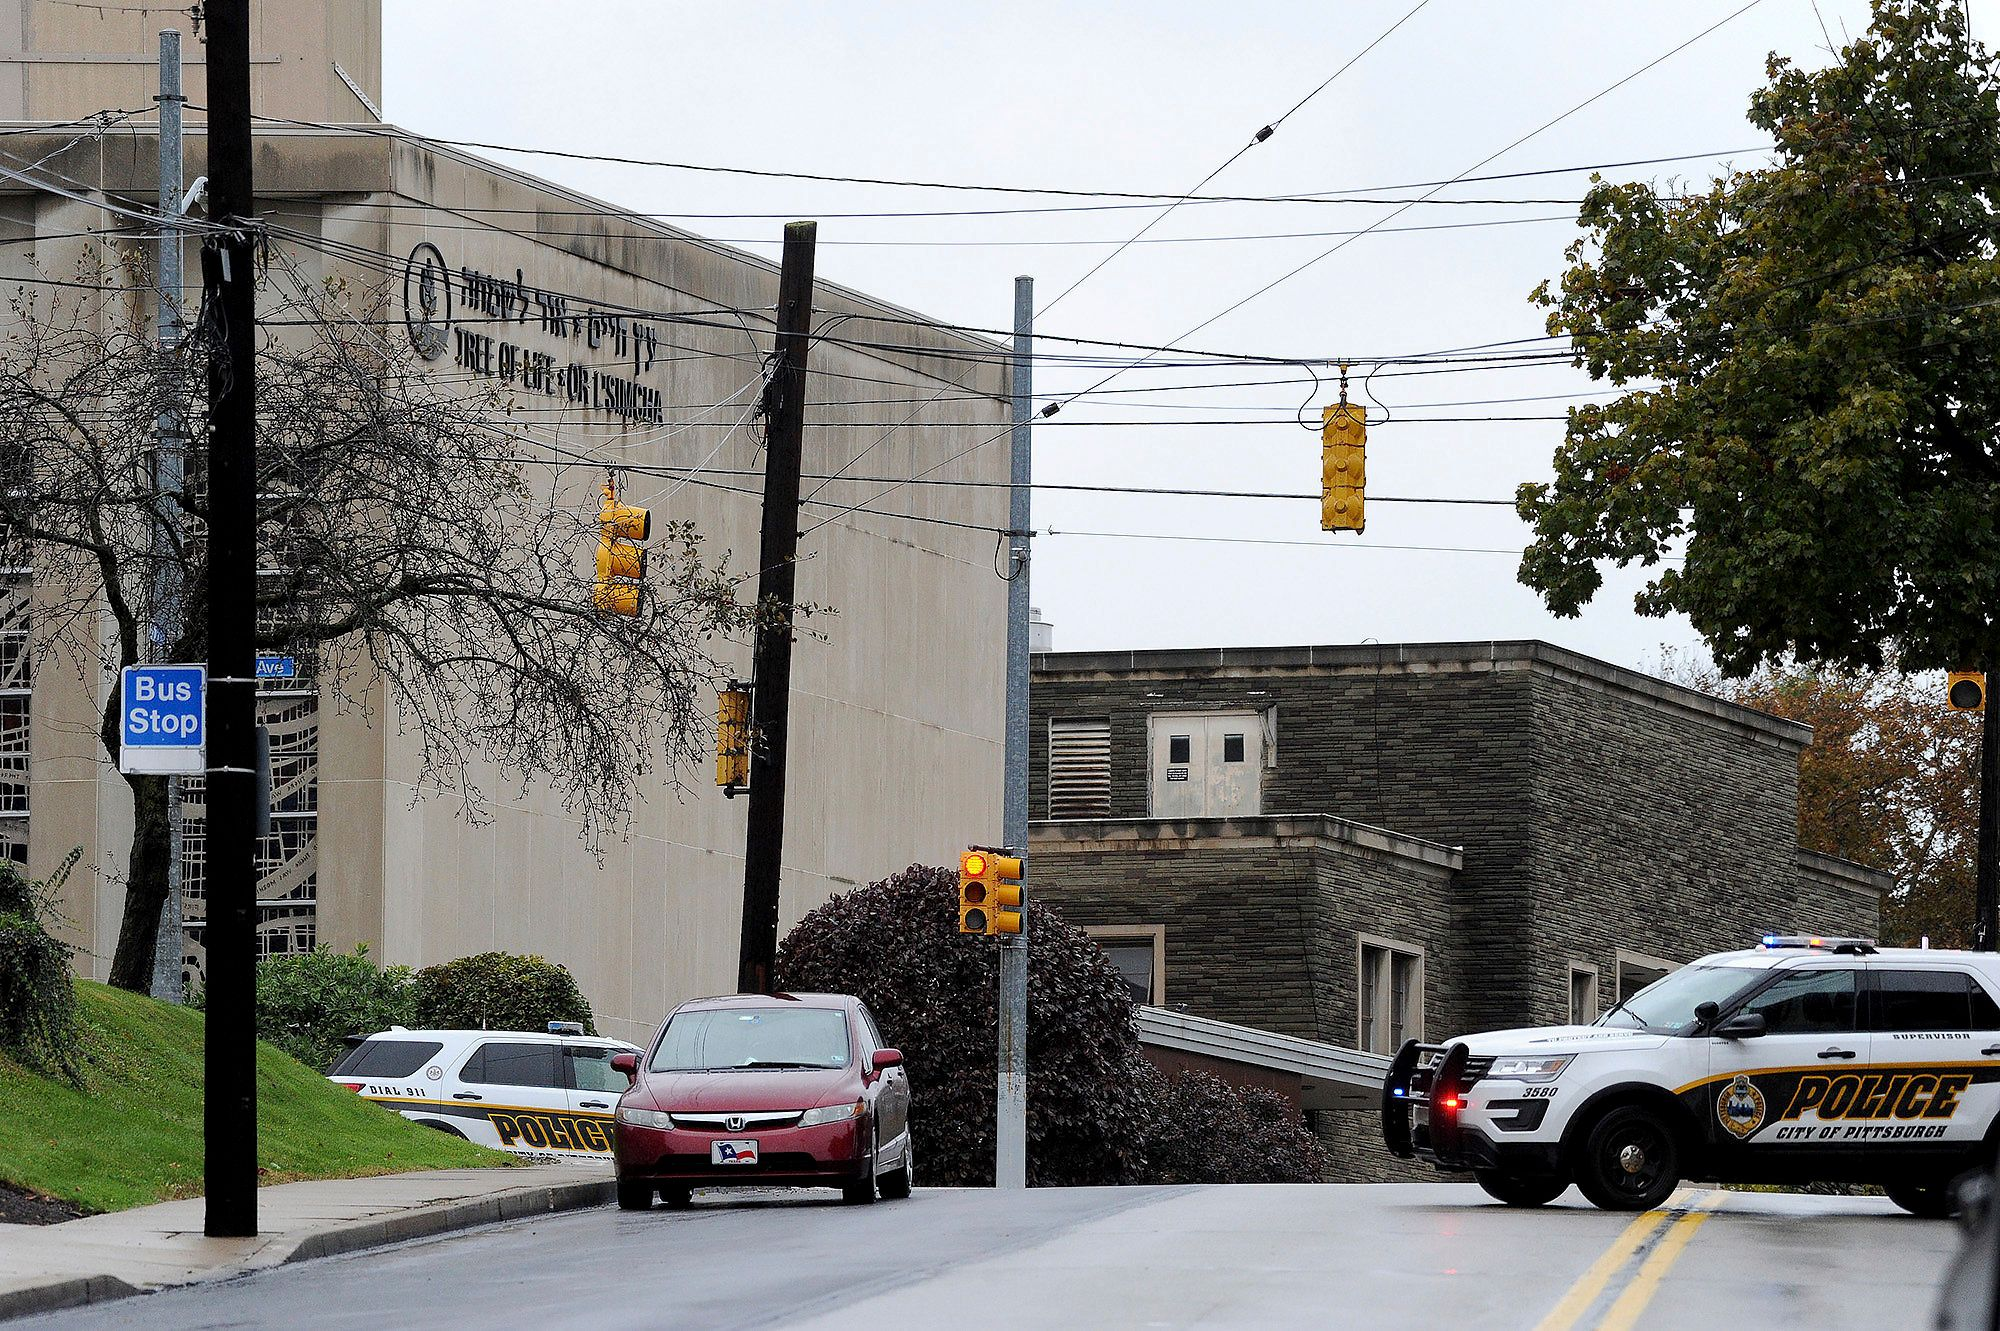 Active shooter situation at the Tree of Life synagogue on Wildins Avenue in the Squirrel Hill neighborhood on Saturday, October 27, 2018 in Pittsburgh. (Photo: Pam Panchak/Post-Gazette via AP)